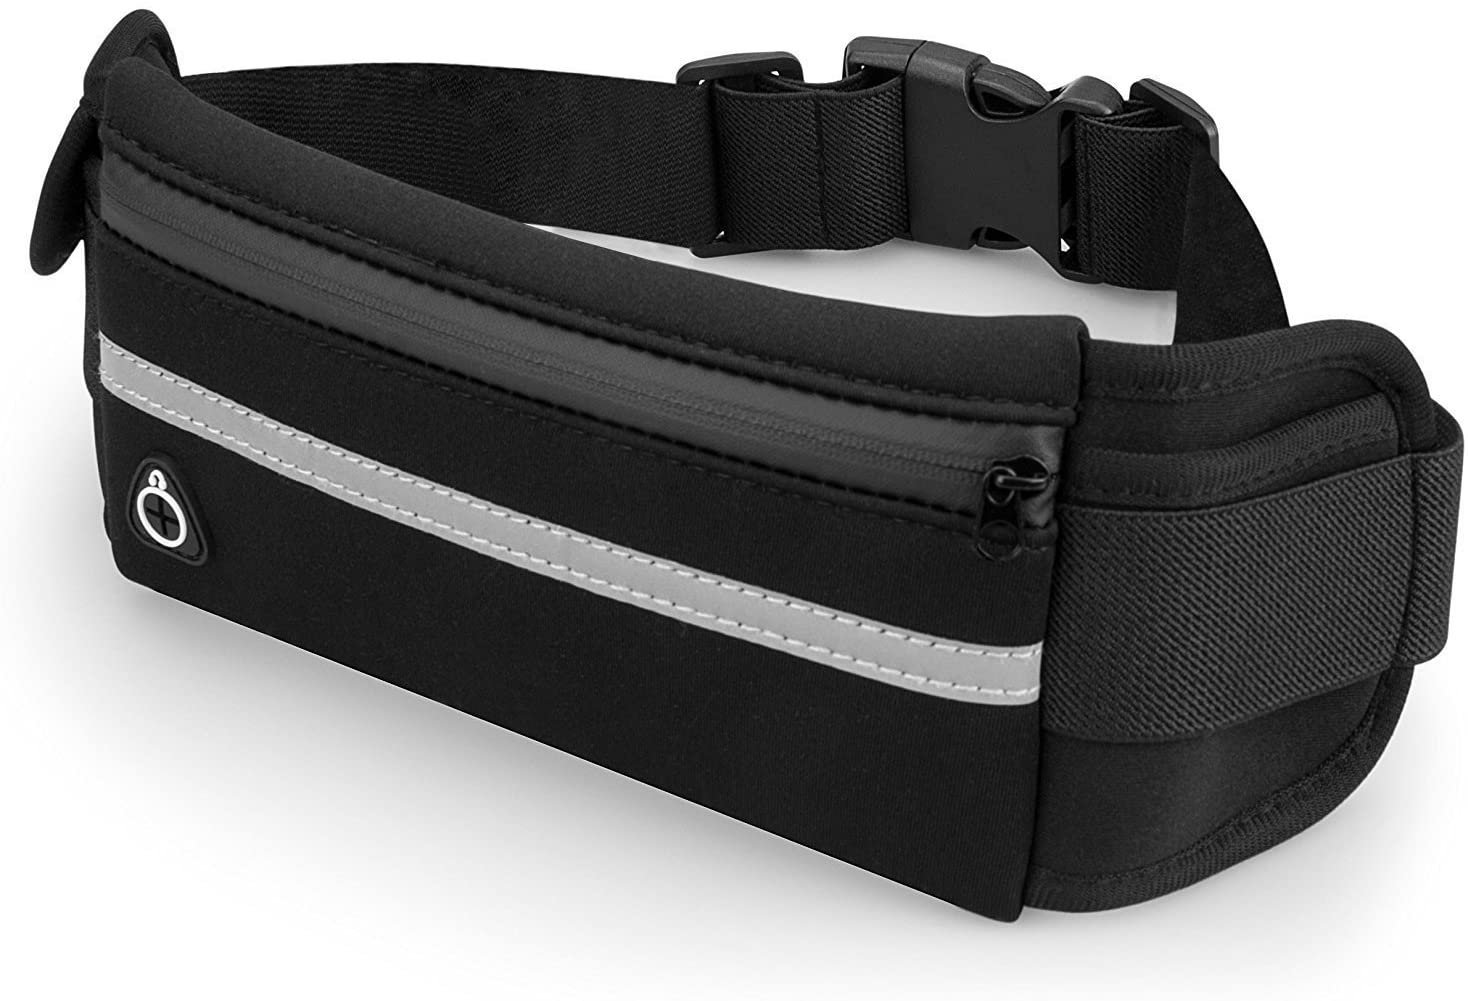 JupiterGear Sports Running Belt and Travel Fanny Pack for Jogging, Cycling and Outdoors with Water Resistant Pockets